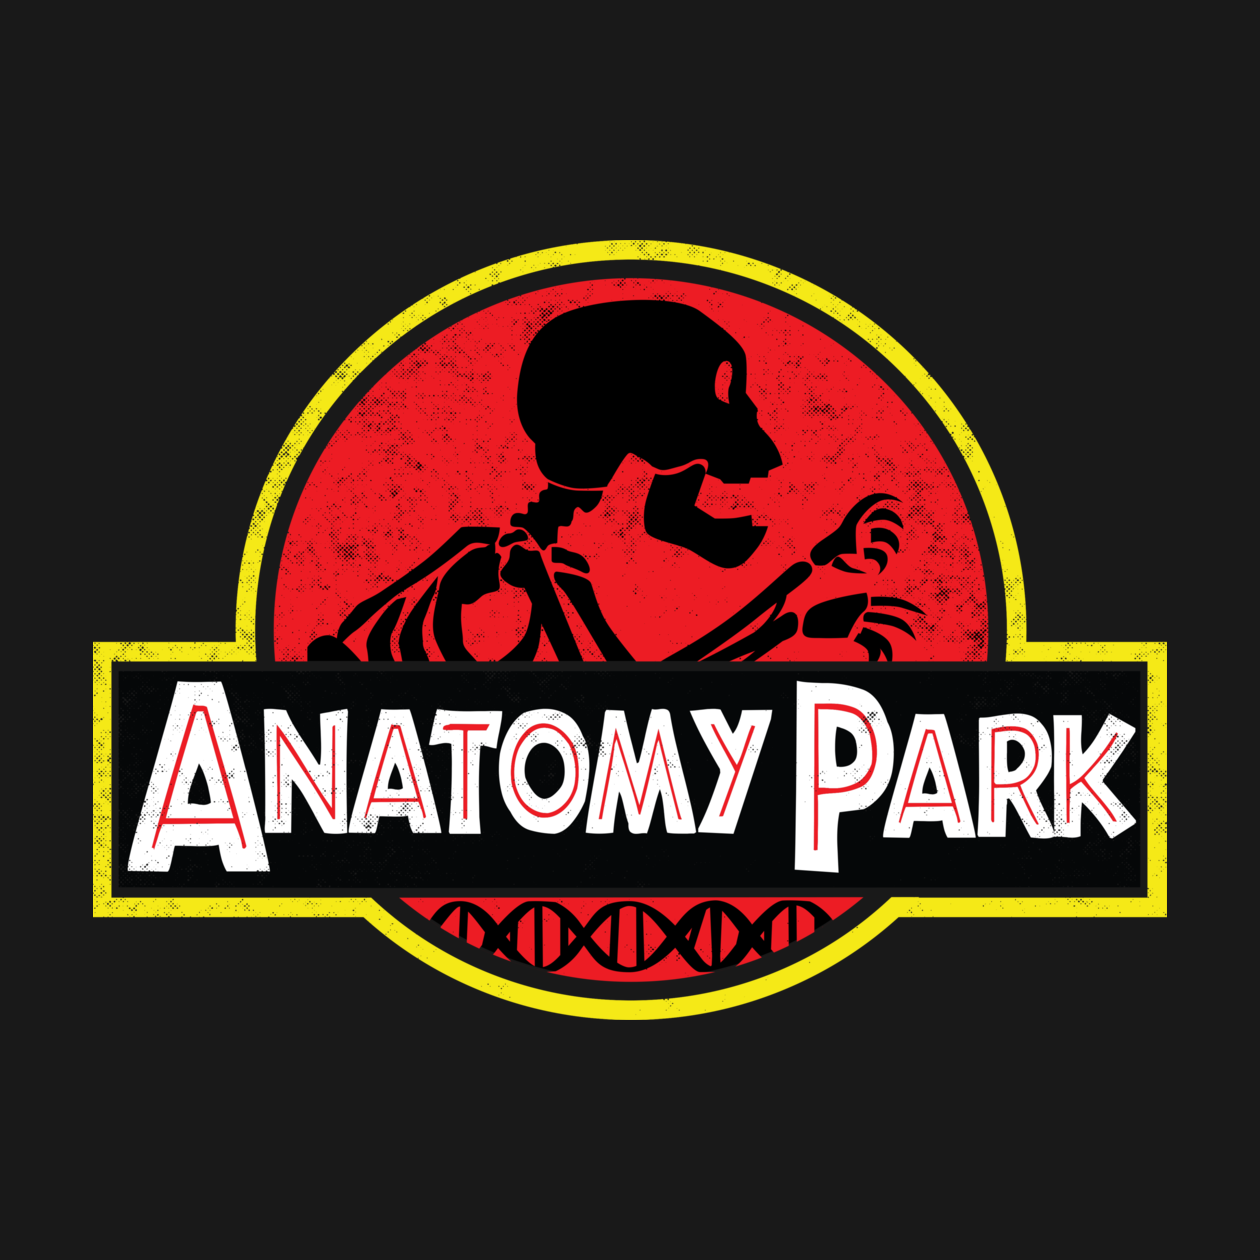 Take a microscopic journey to Anatomy Park, located in a scenic ...